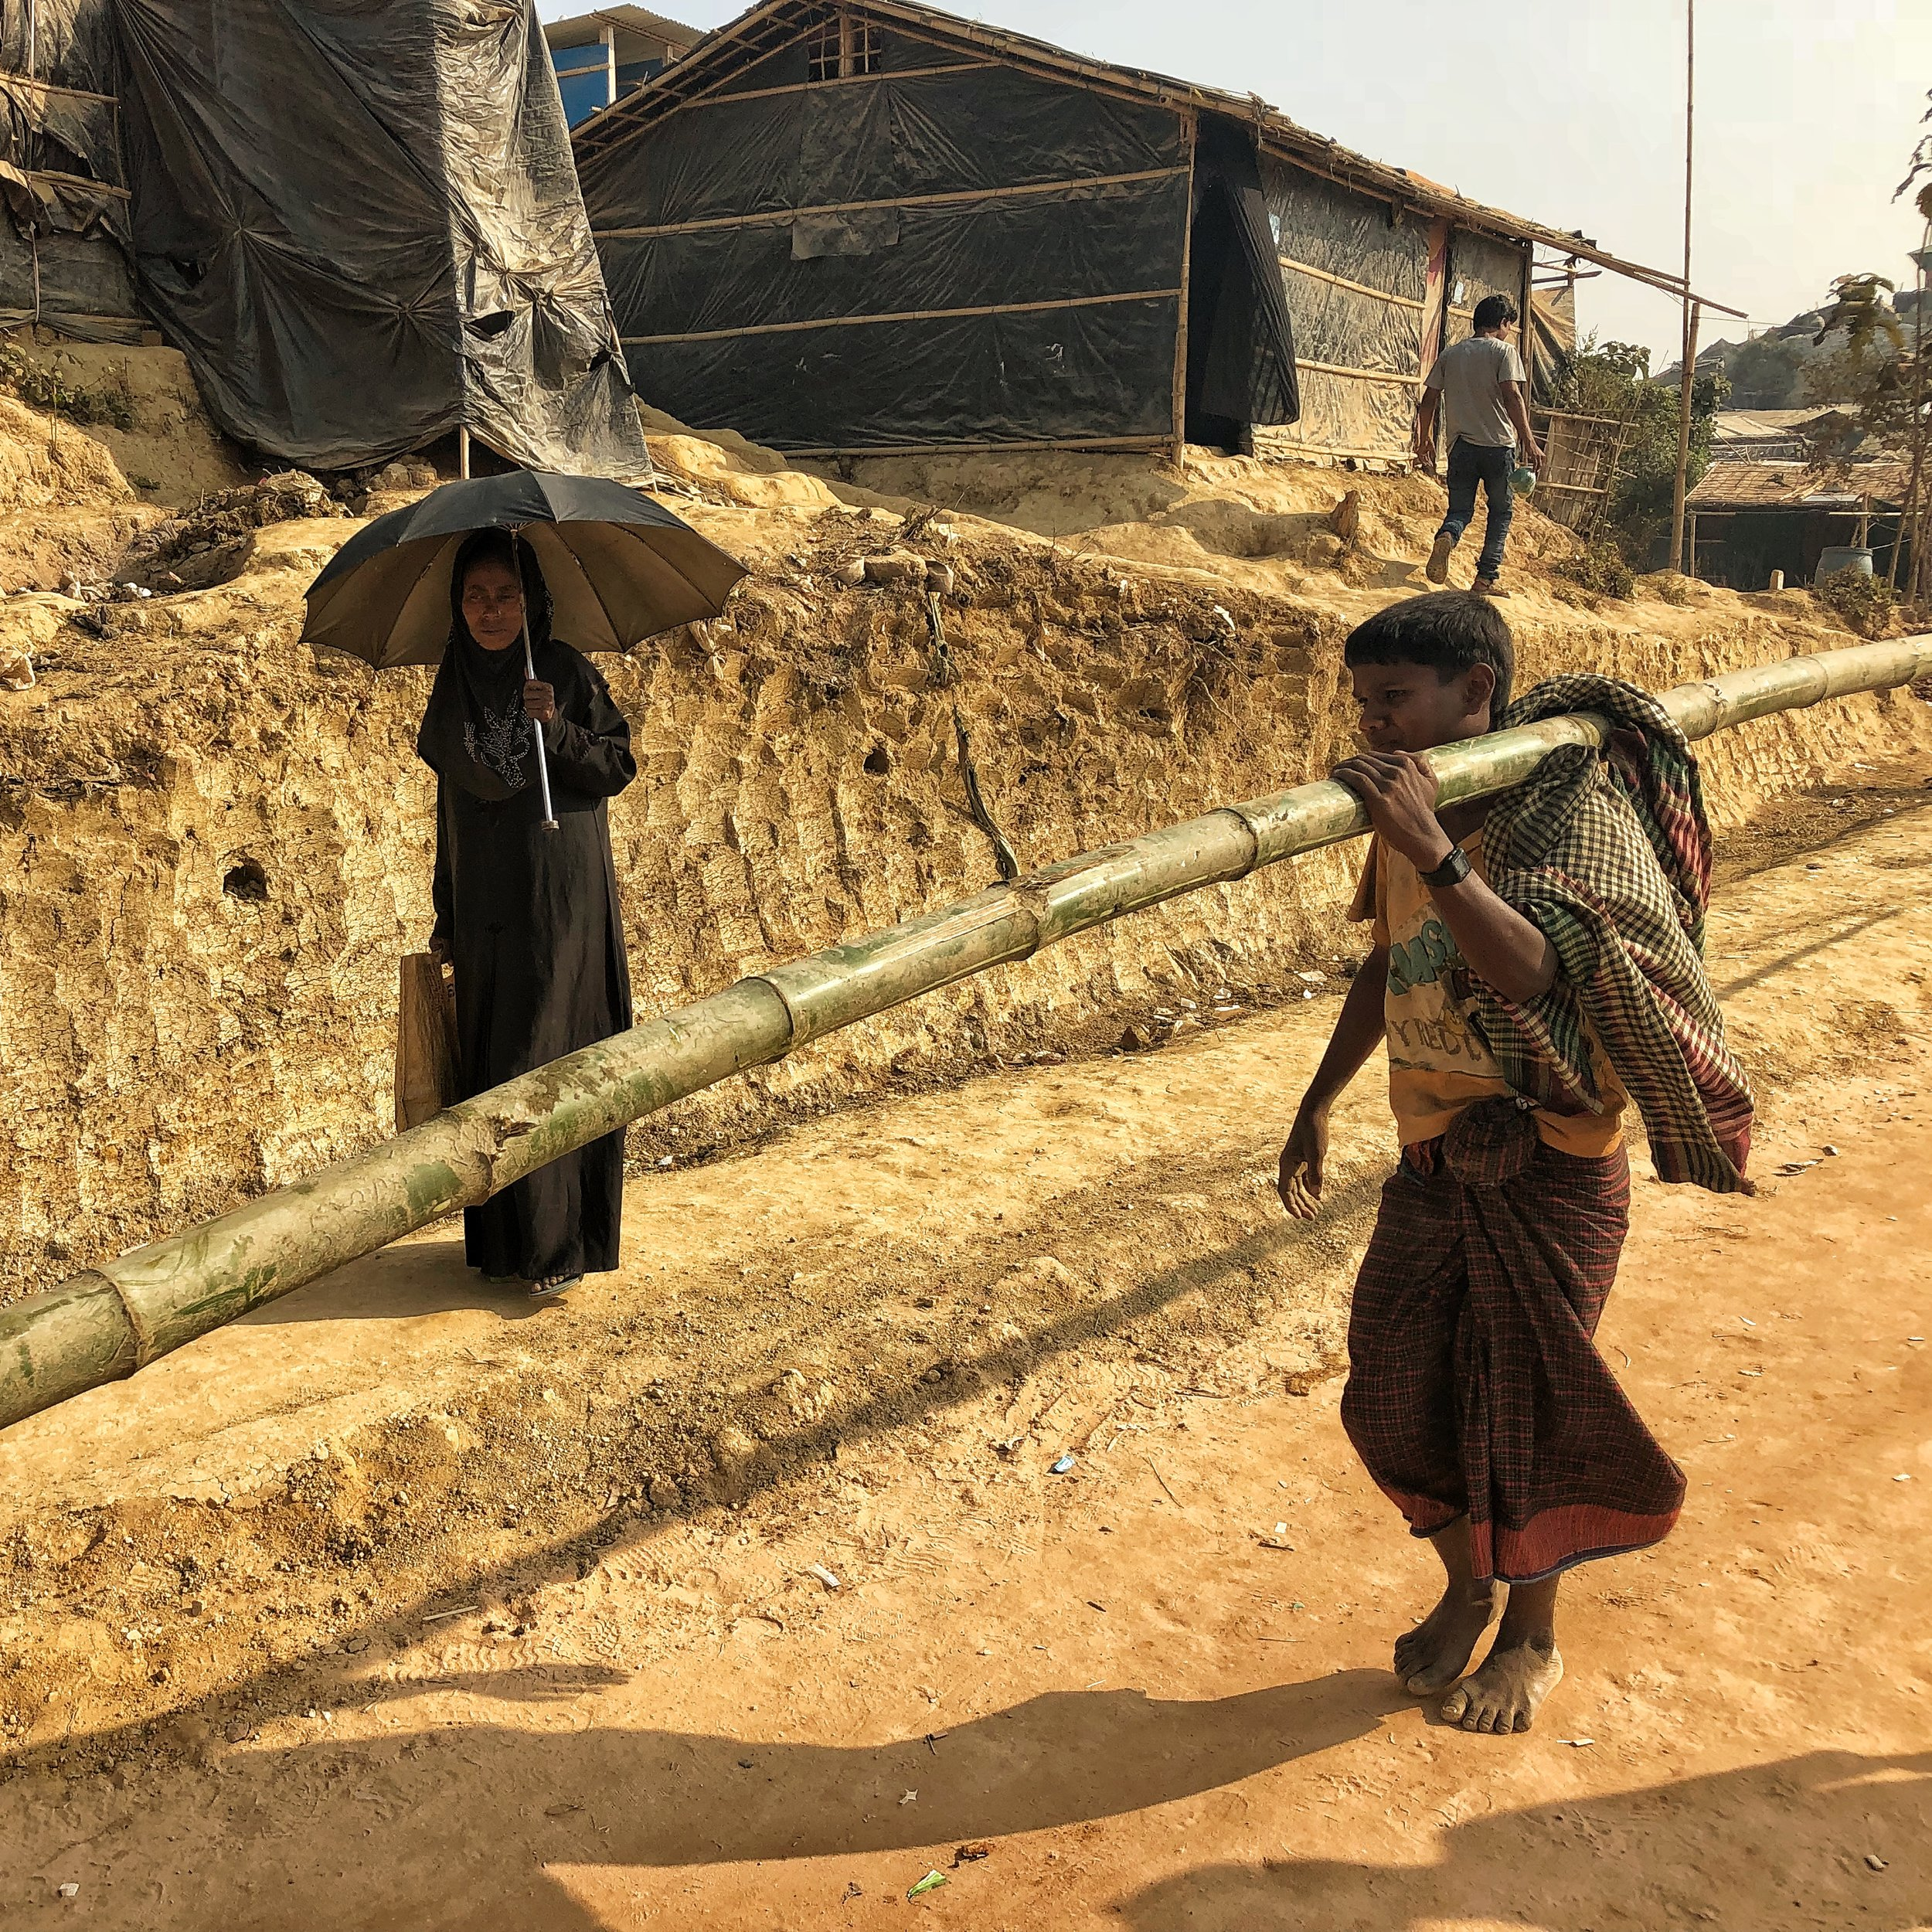 A man carries bamboo along a newly dug road in Tangkhali Refugee Camp